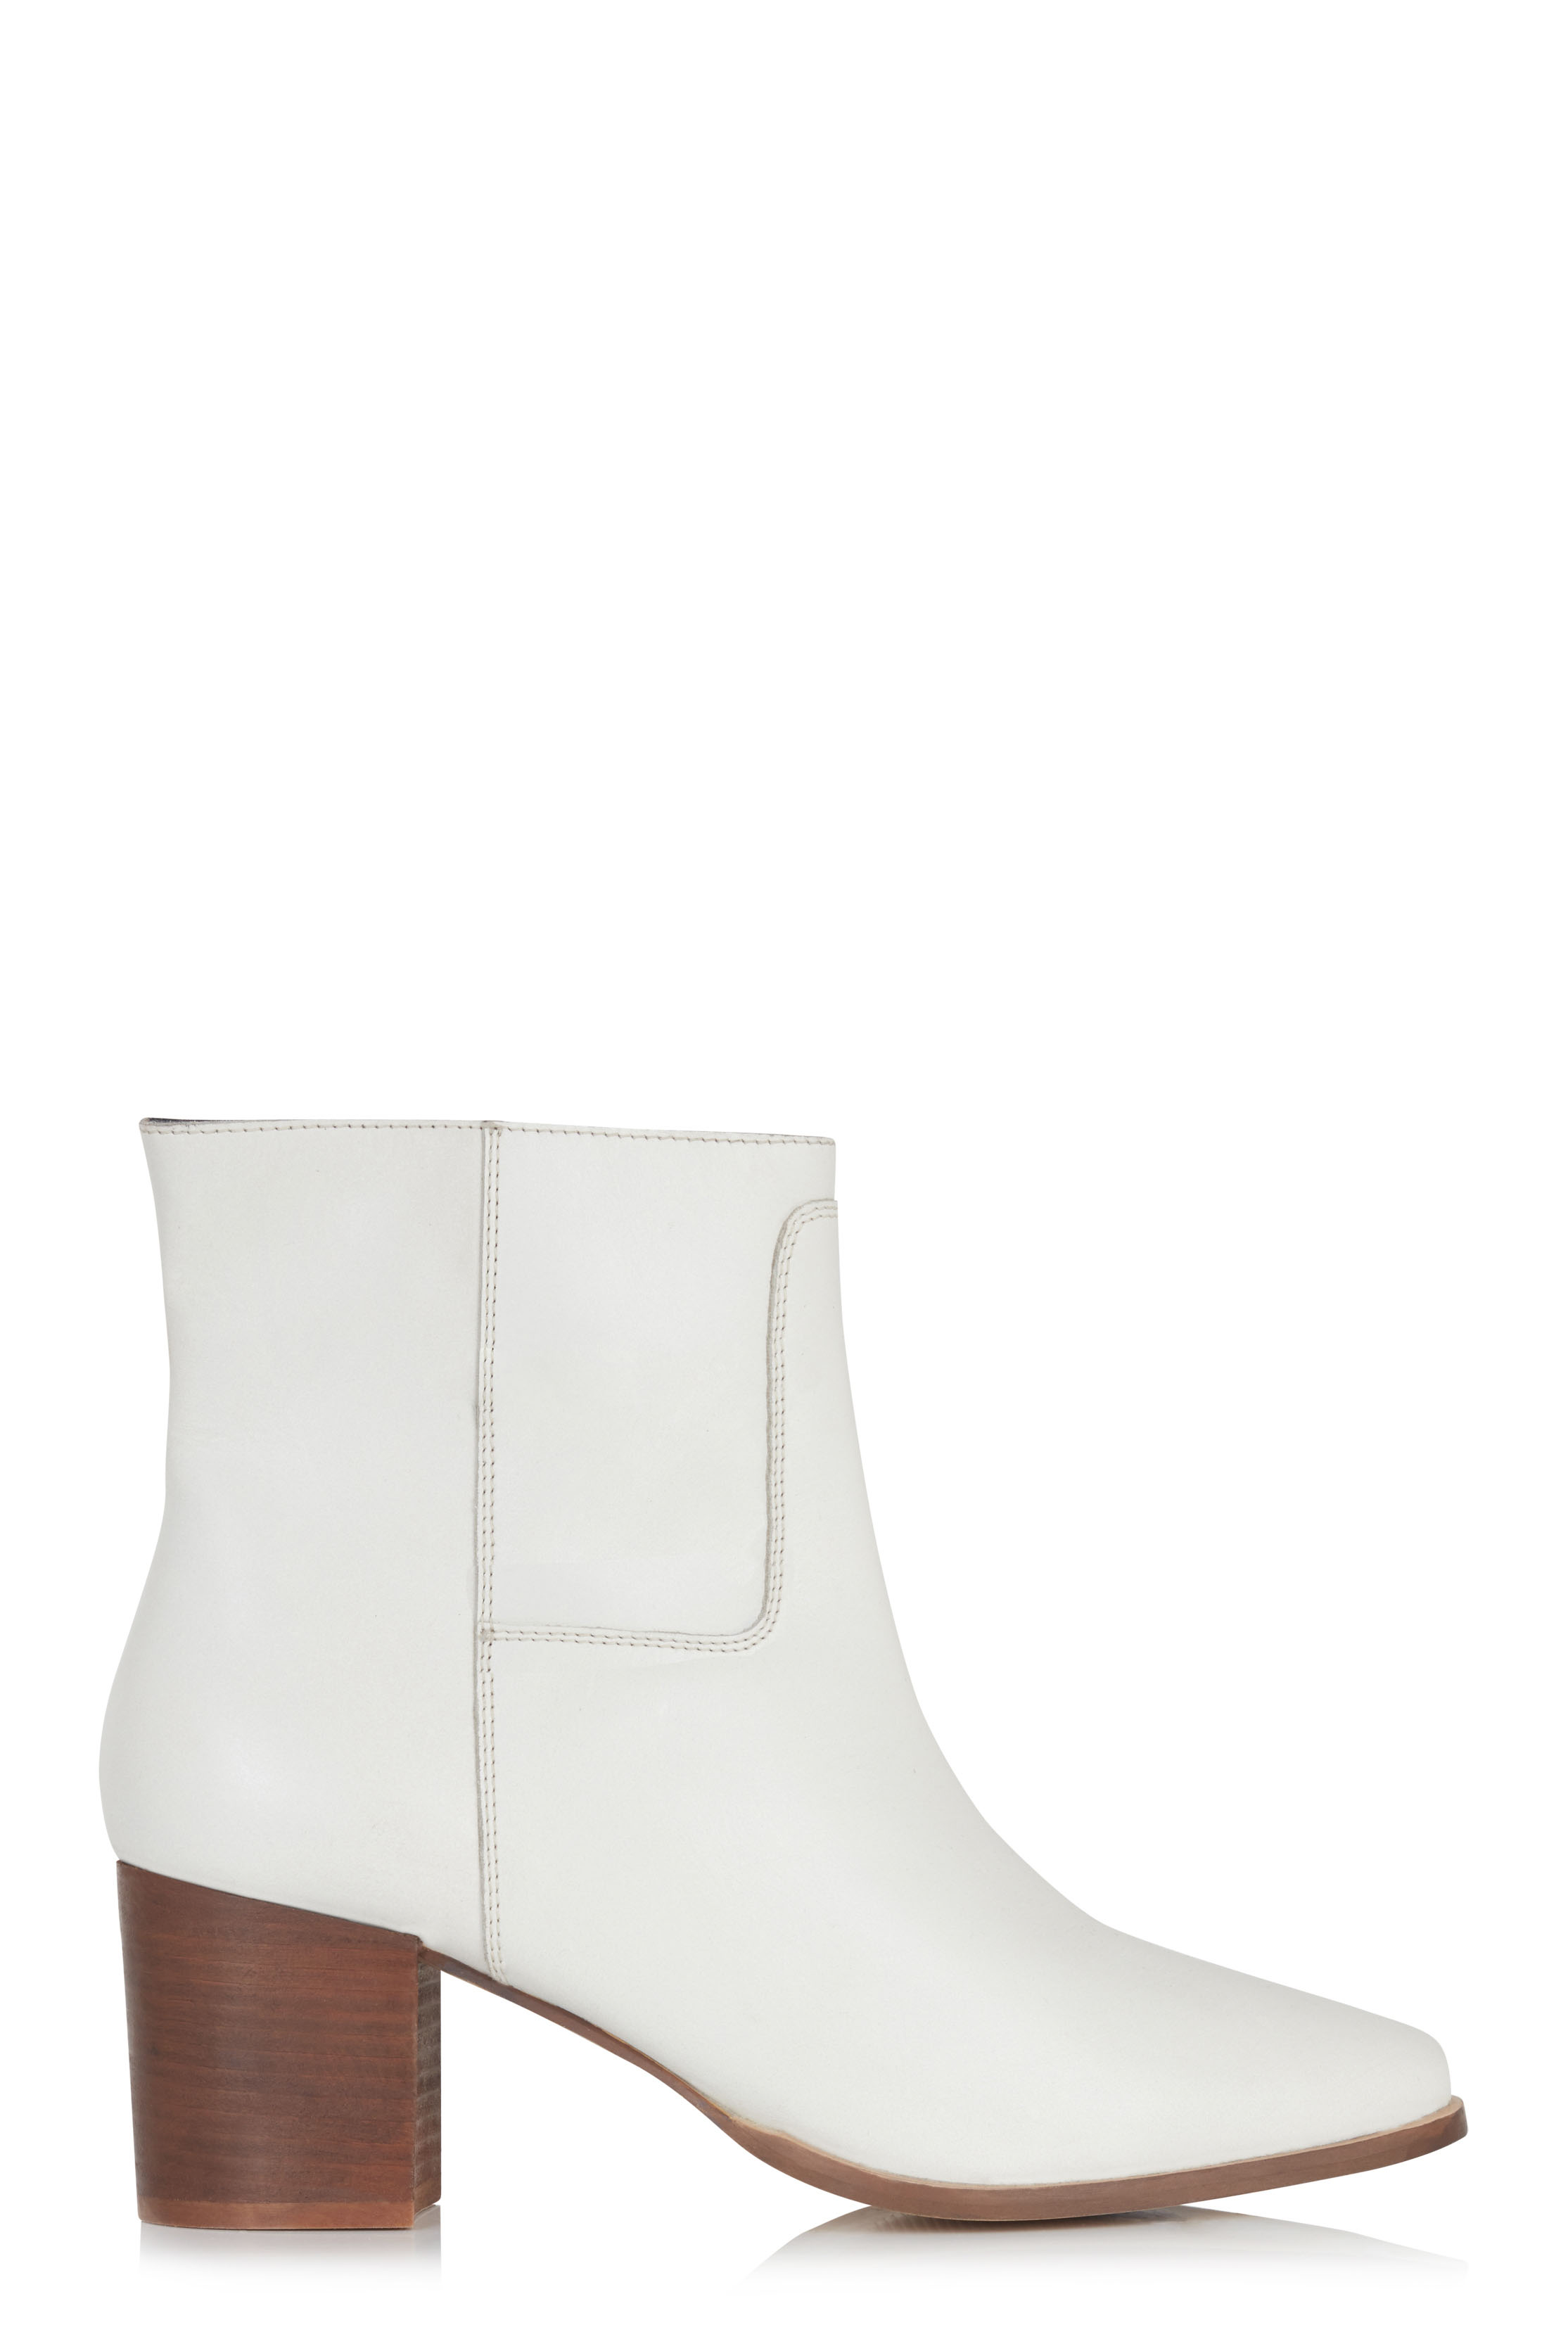 LTS Sophia Leather Ankle Boot